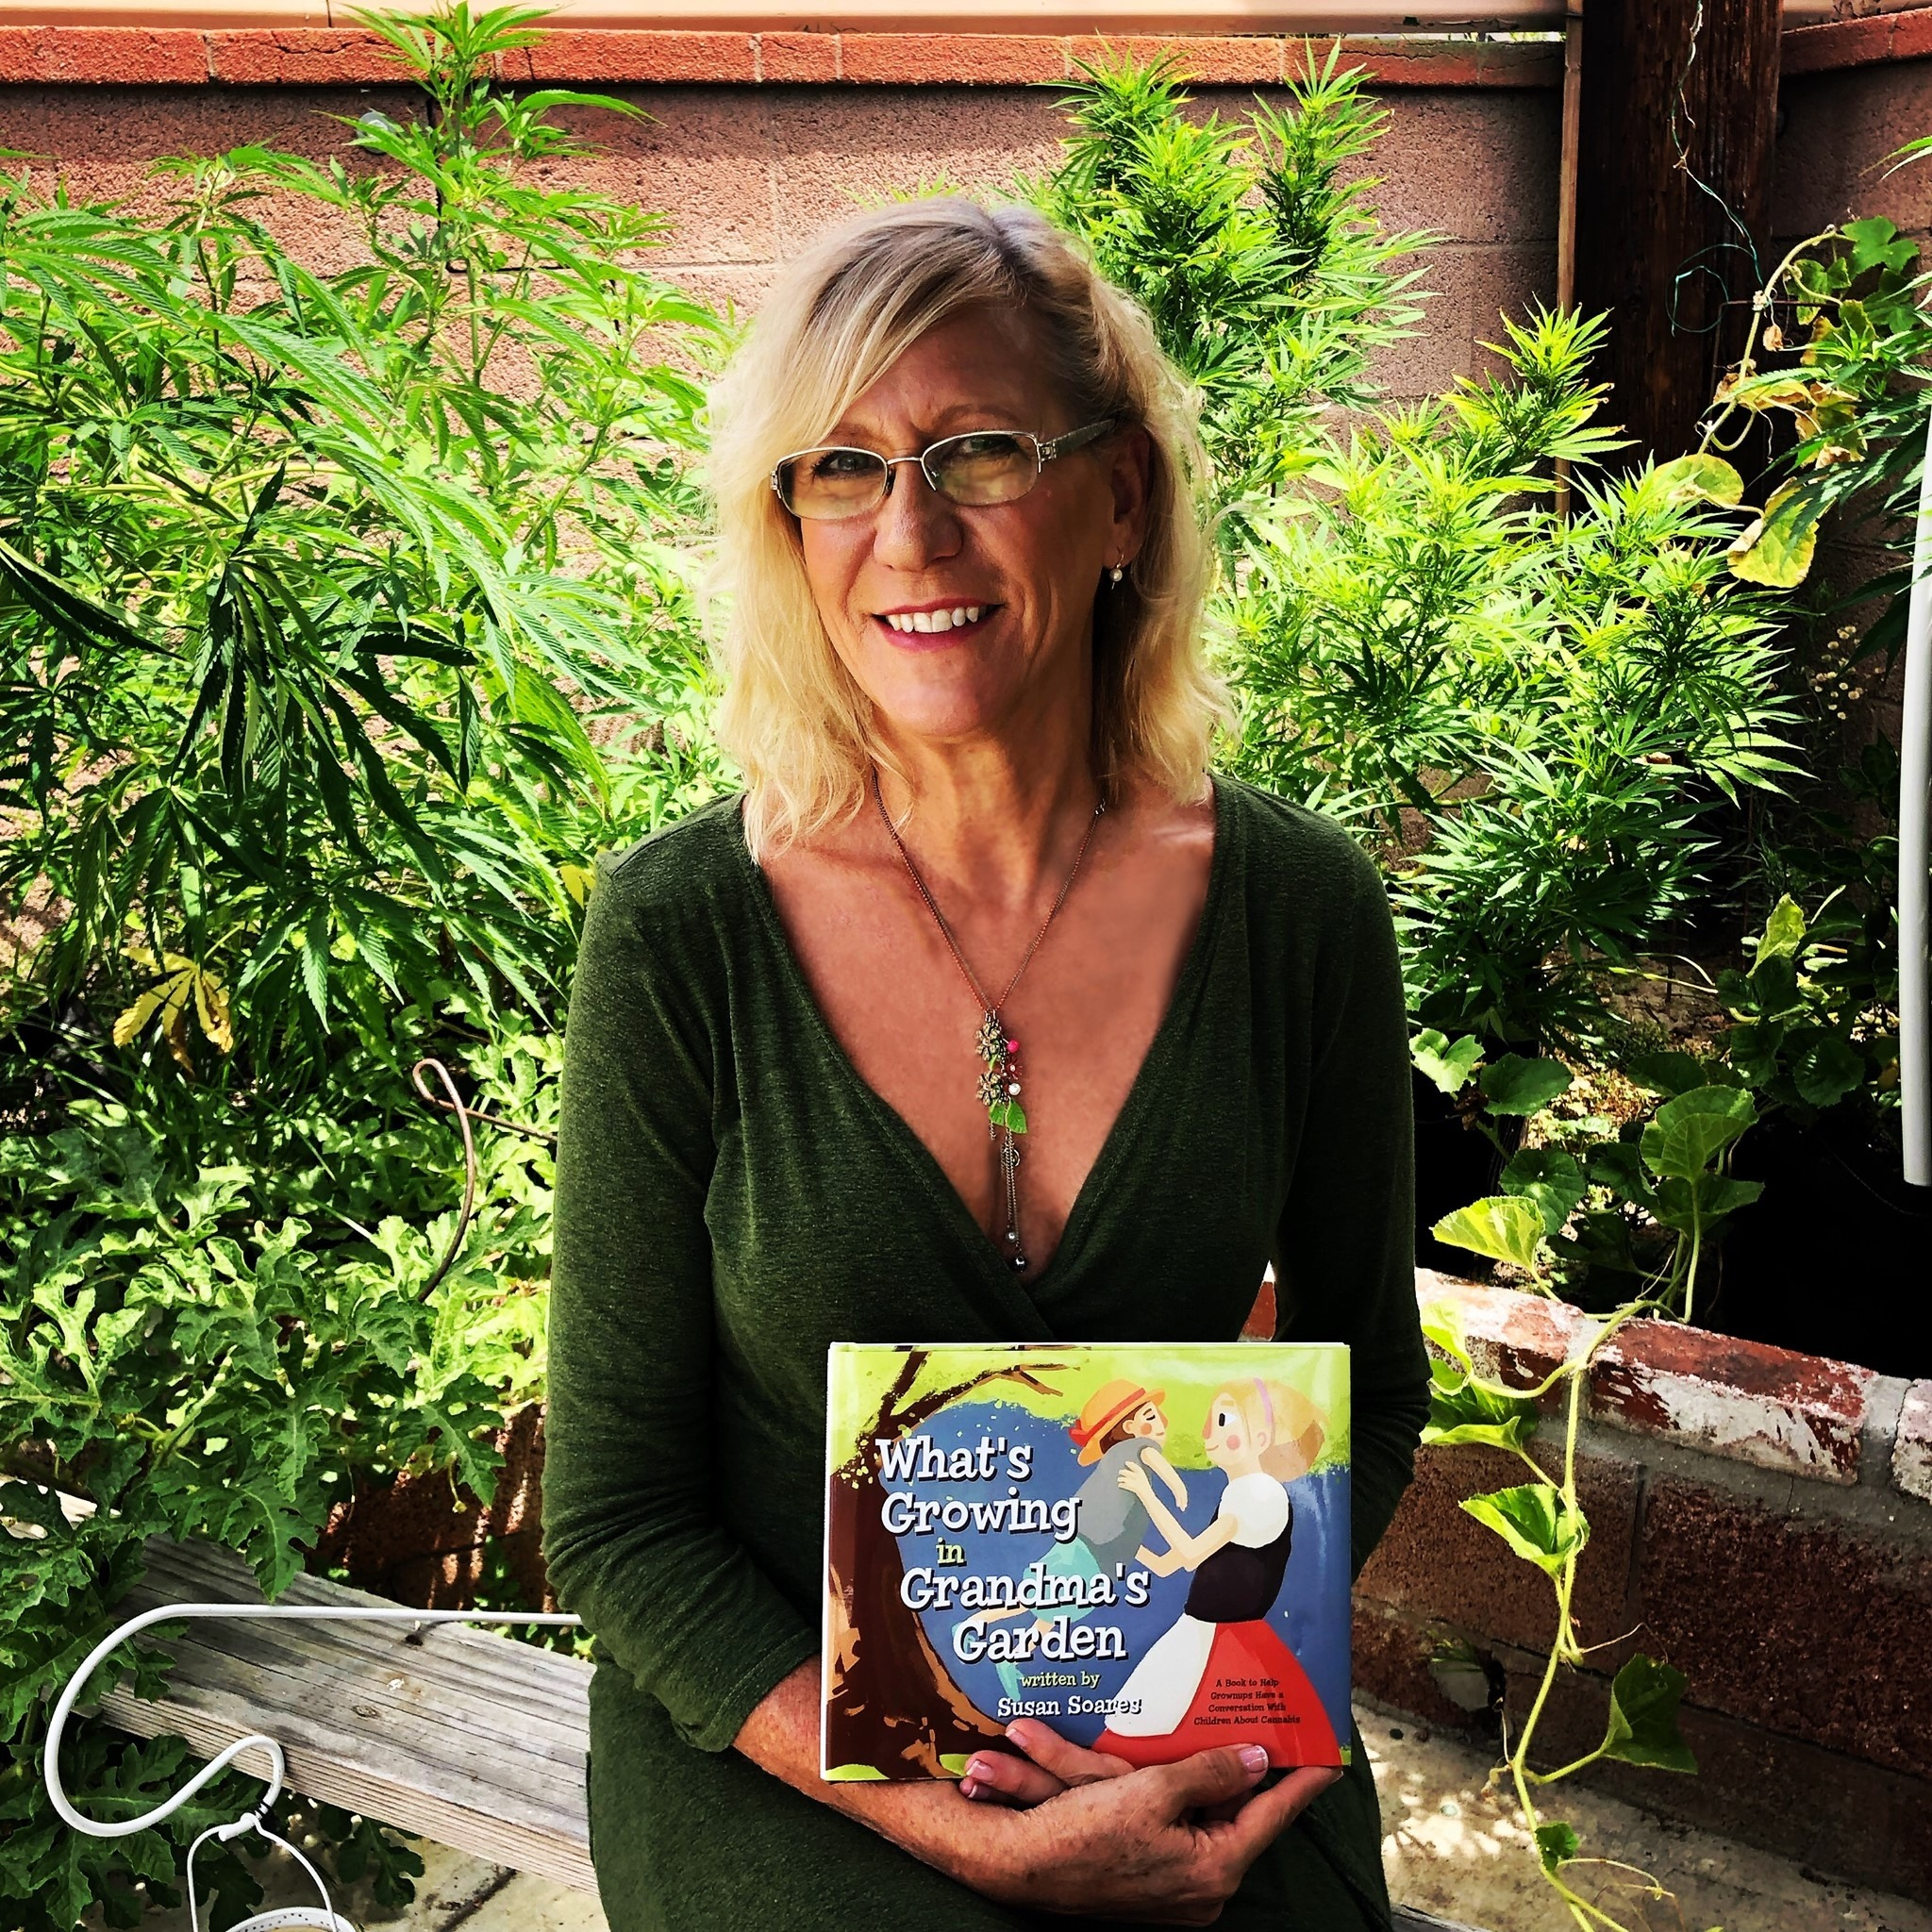 'Grandma's Garden' is the result of what cannabis has given and taken from Susan Soares